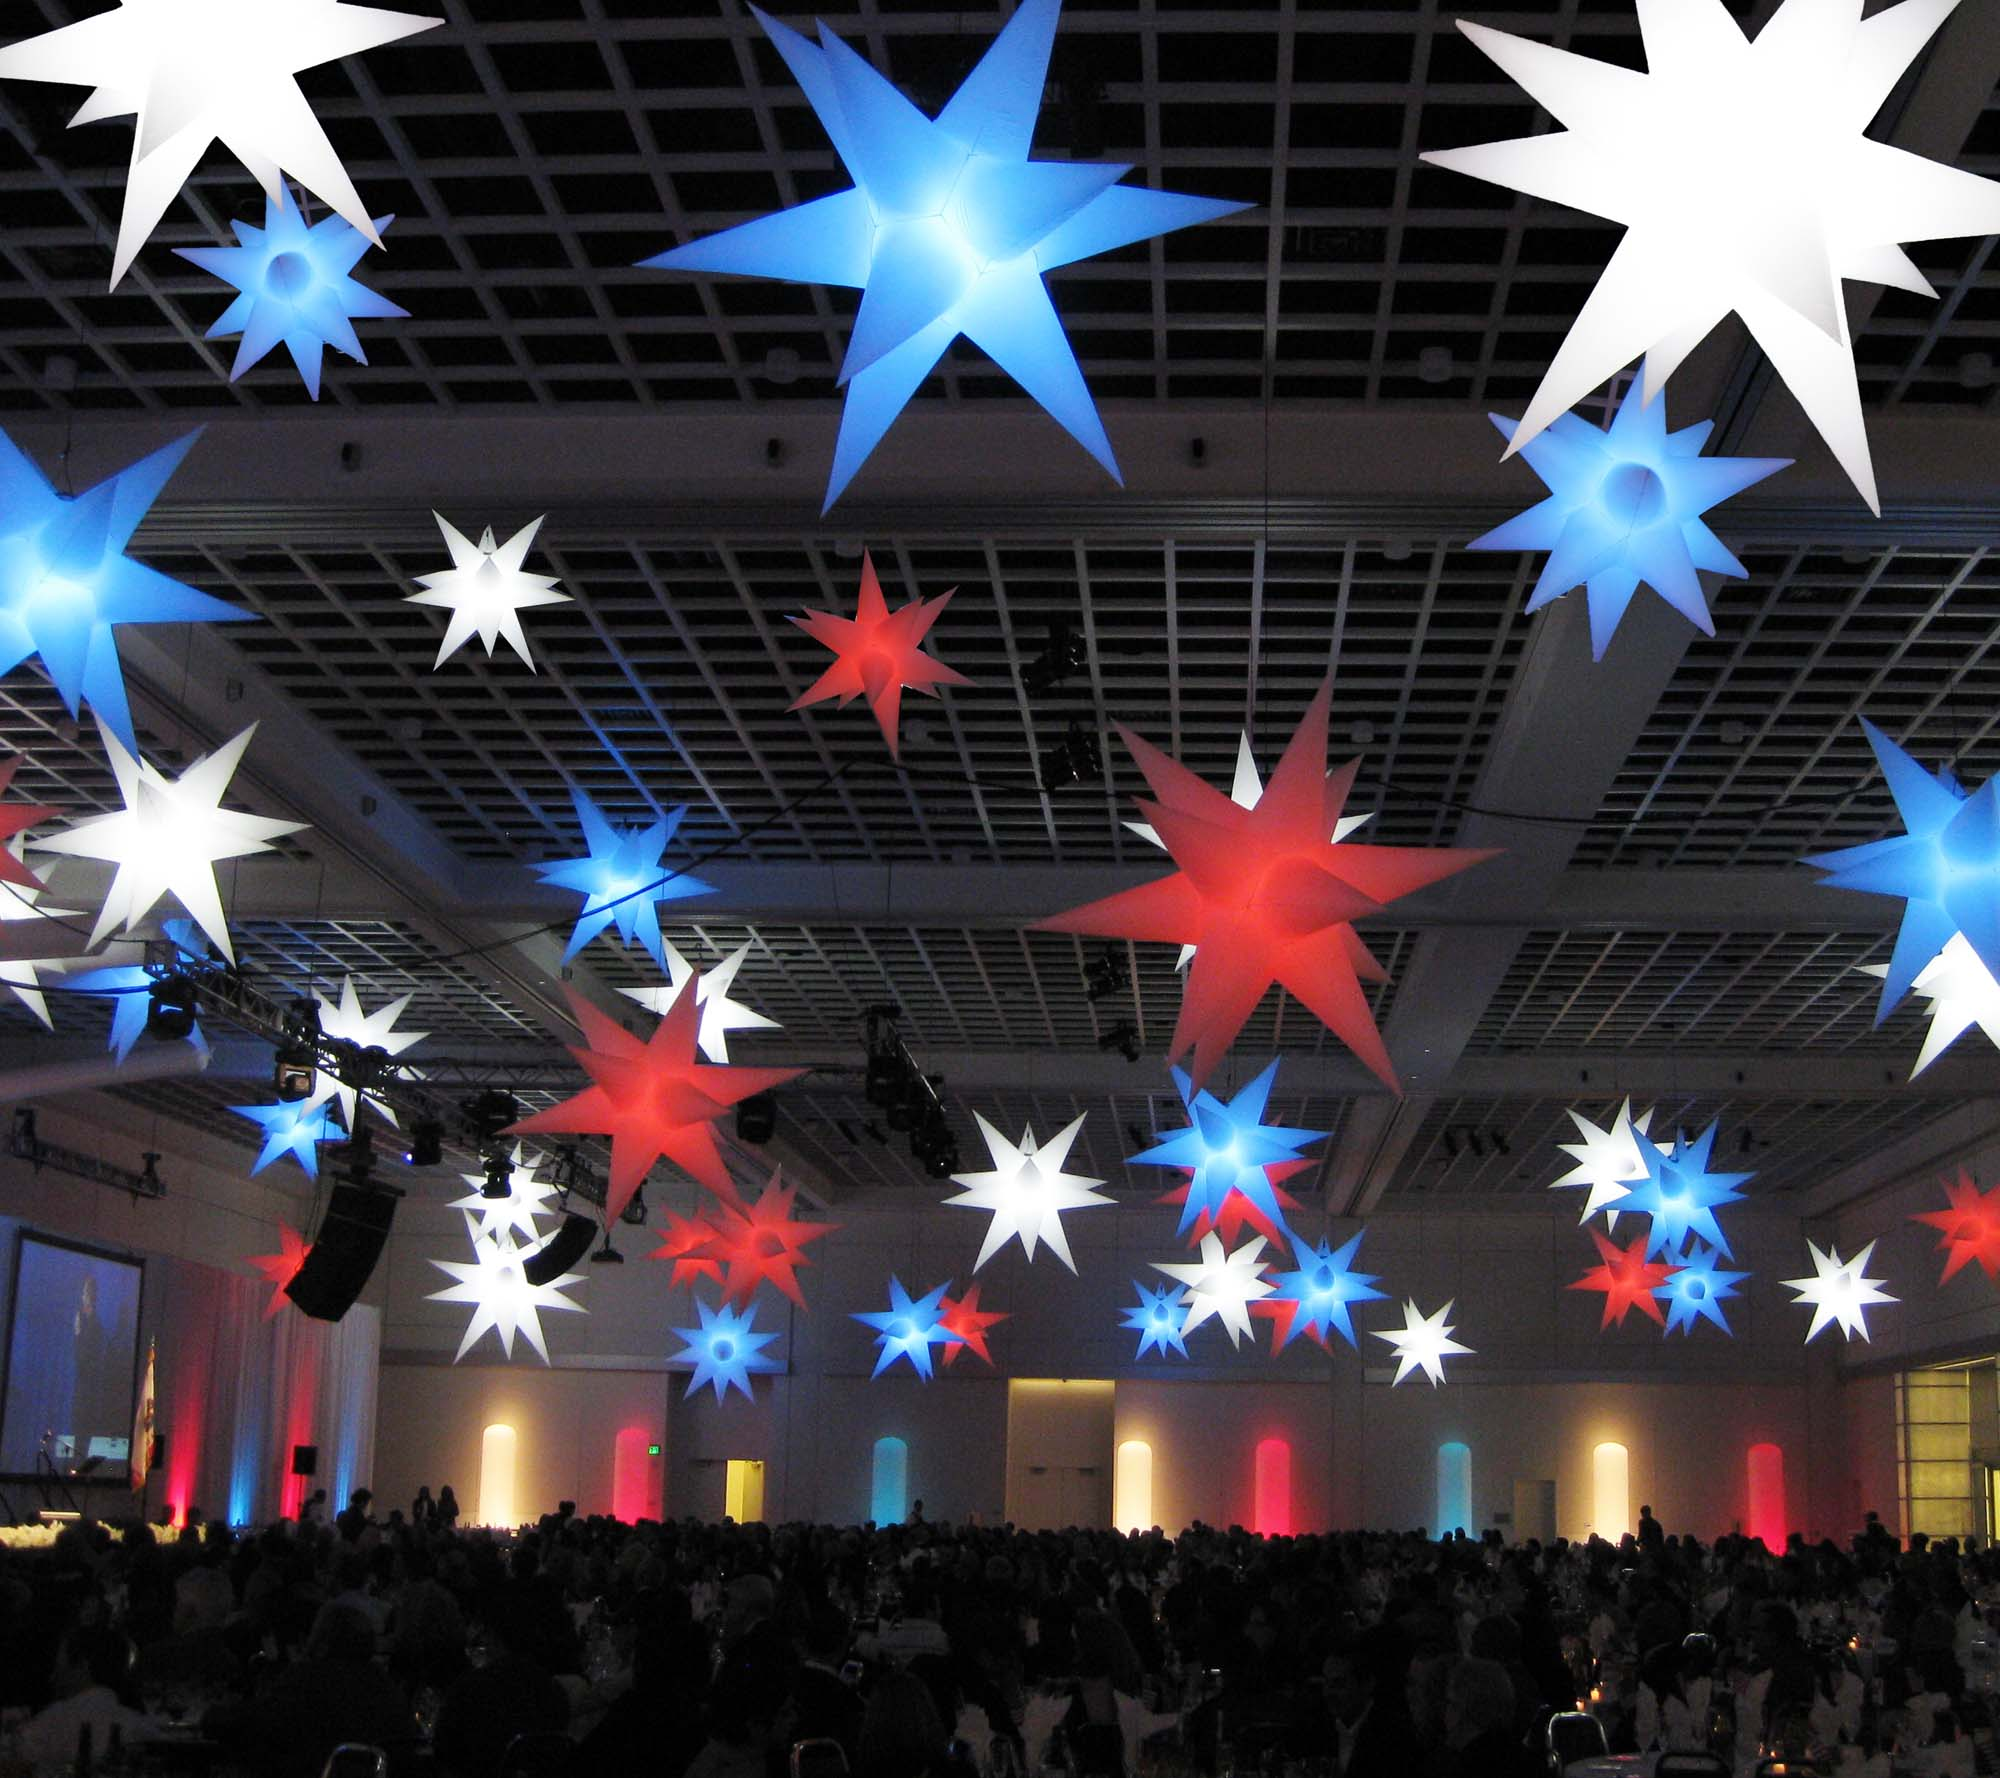 Red, White and Blue Star Hi-Lights Handing from Ceiling in a Big Room